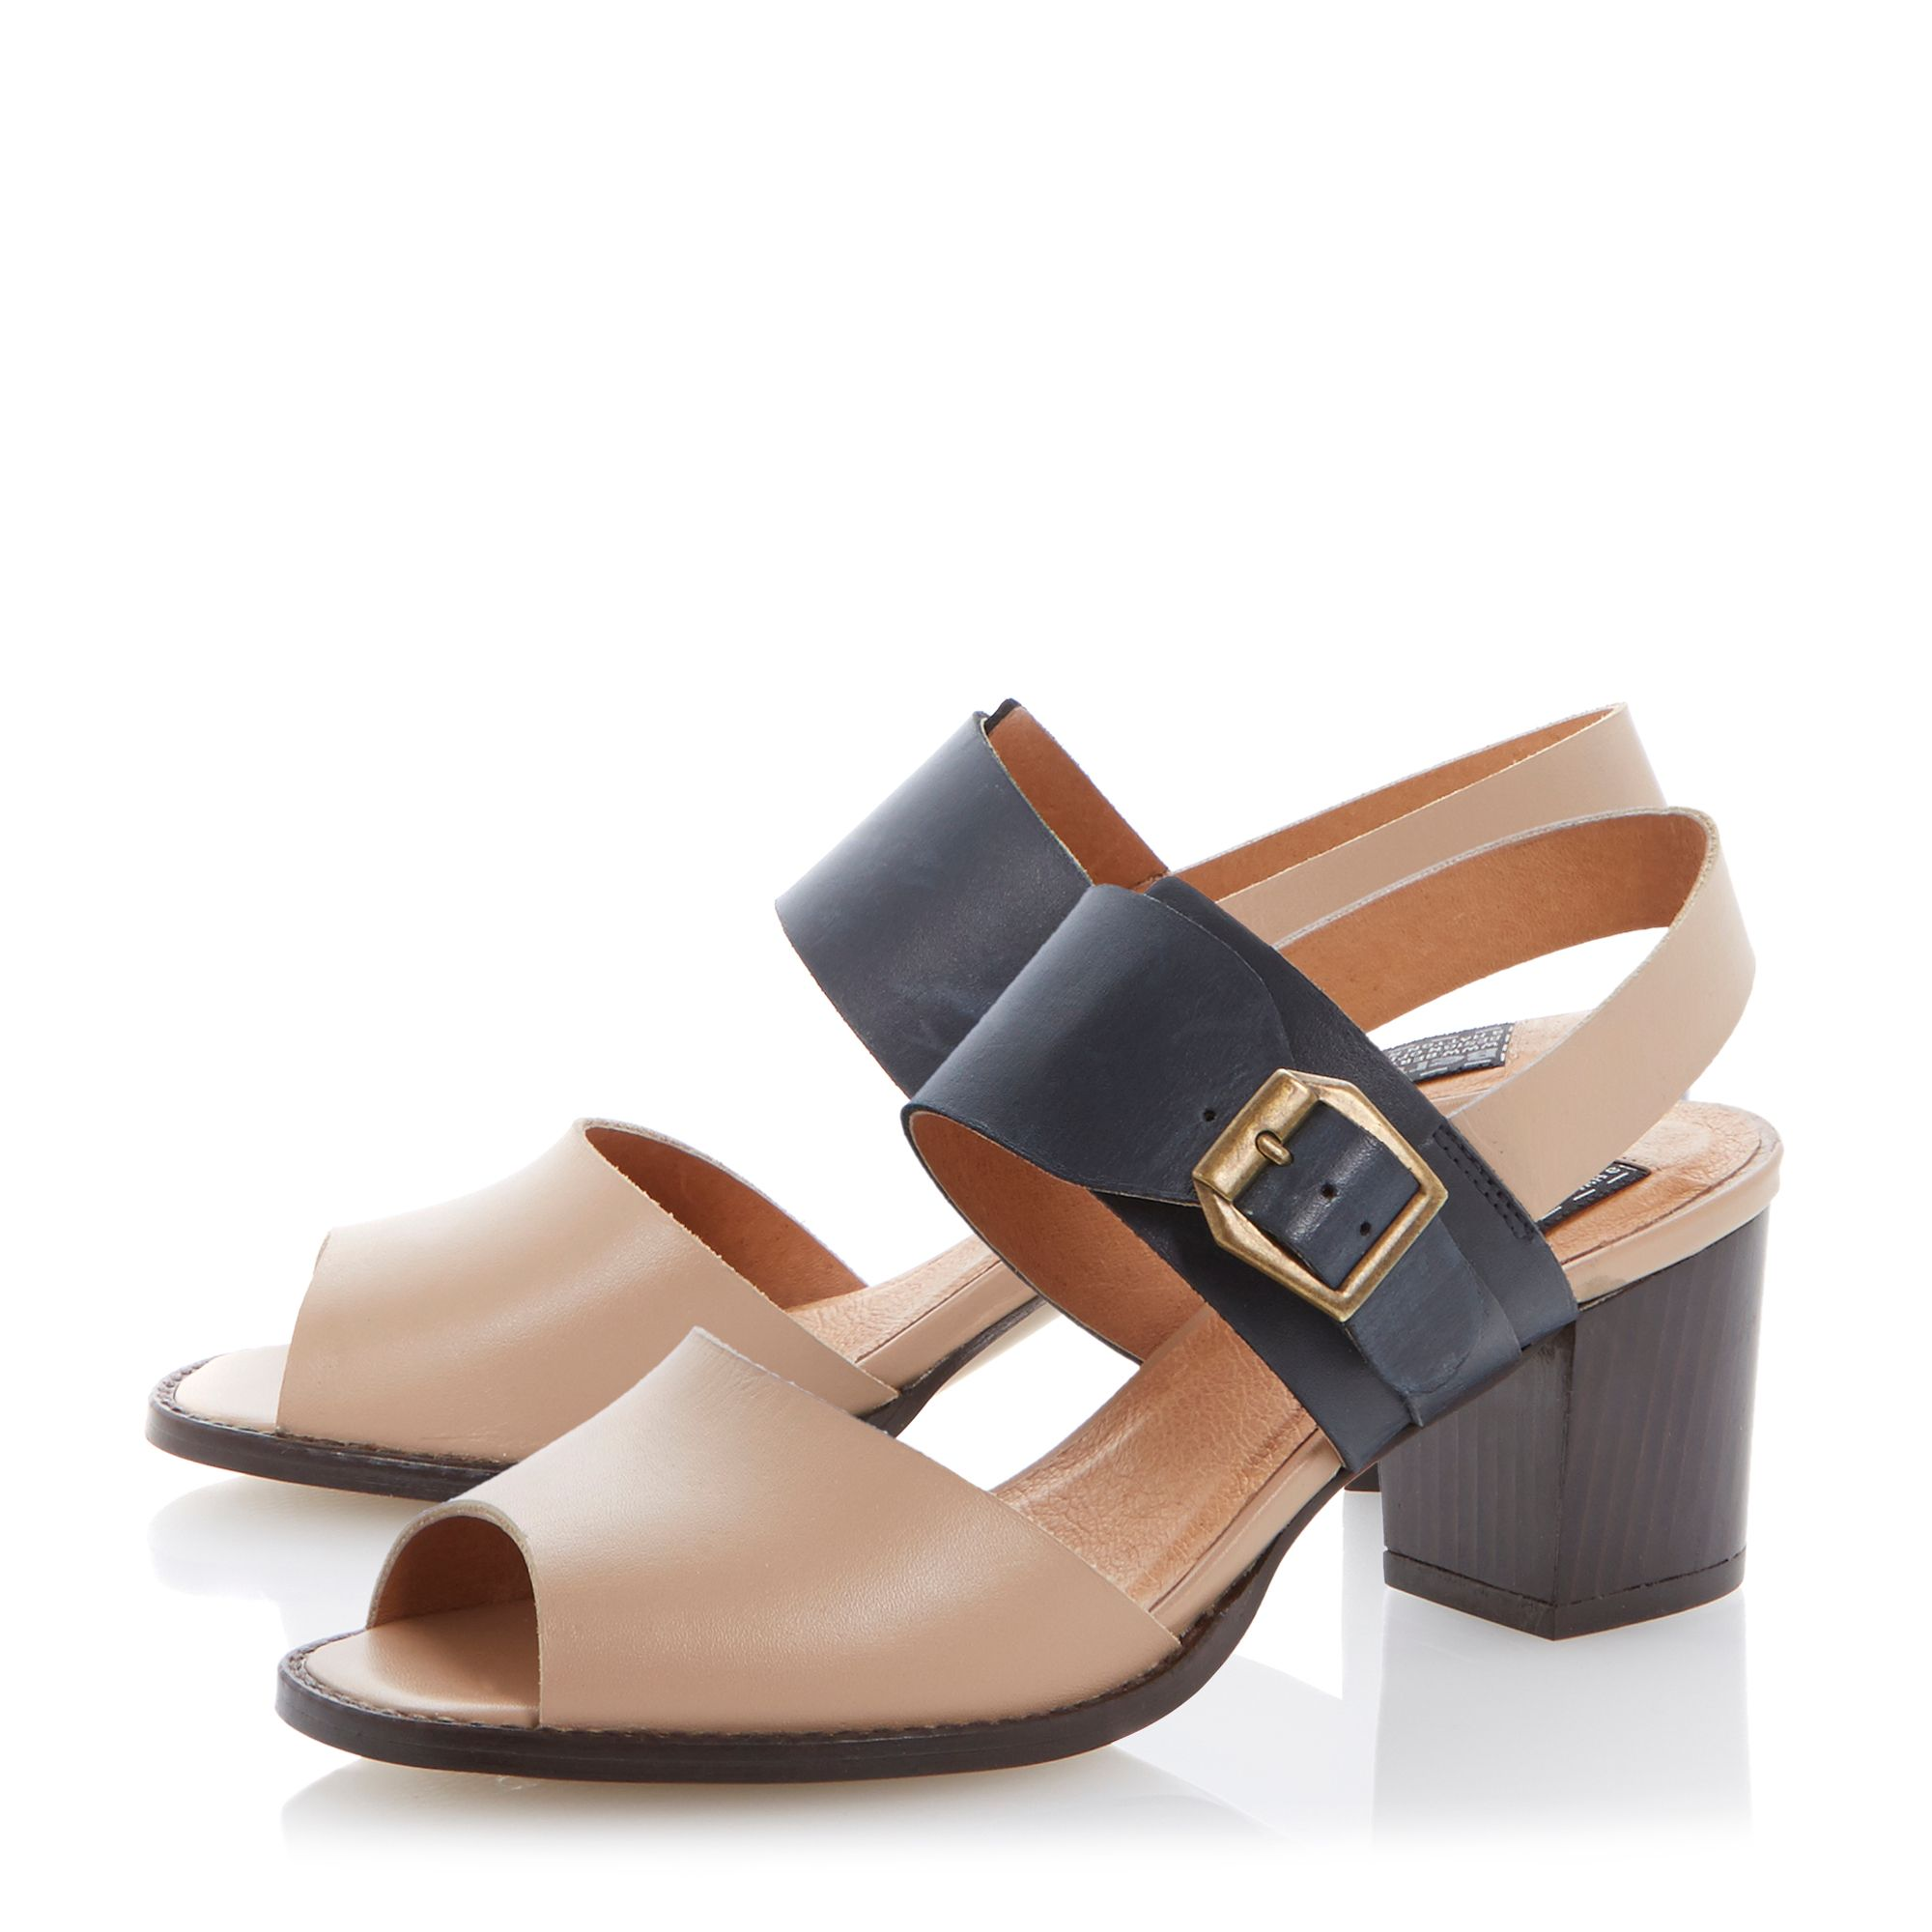 Halla leather block heel buckle sandals